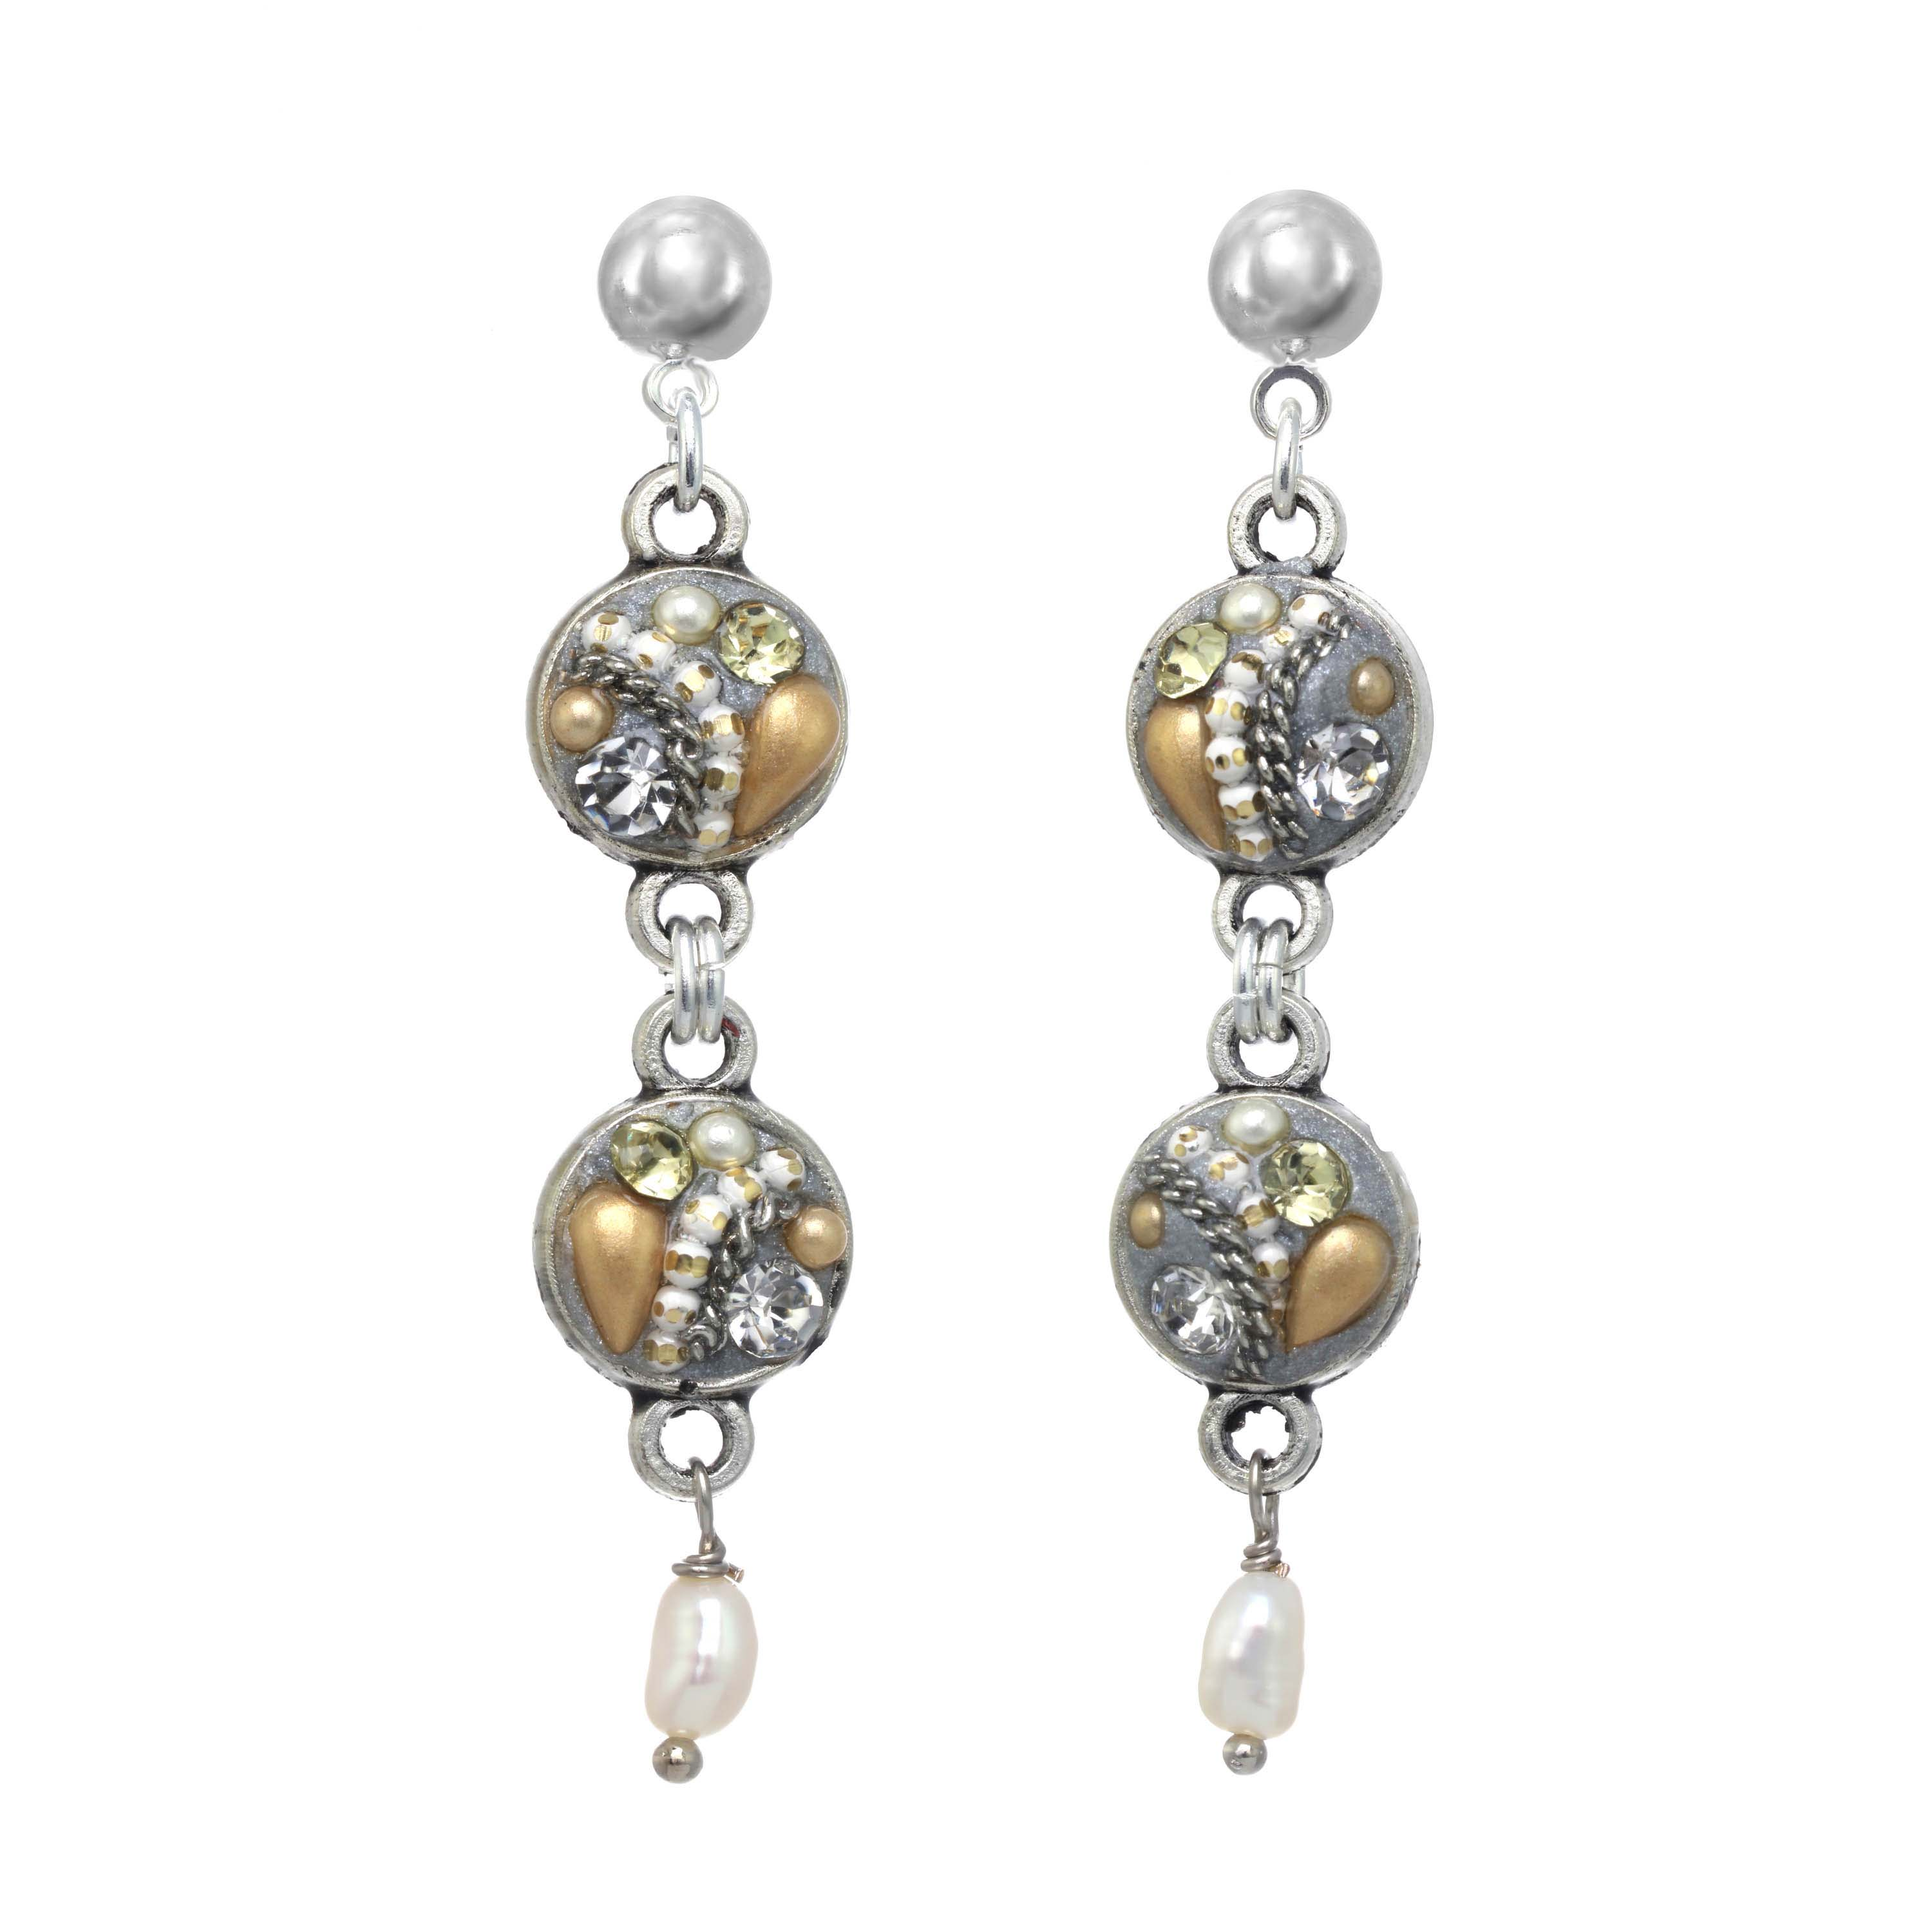 Moonlight Dangling Earrings